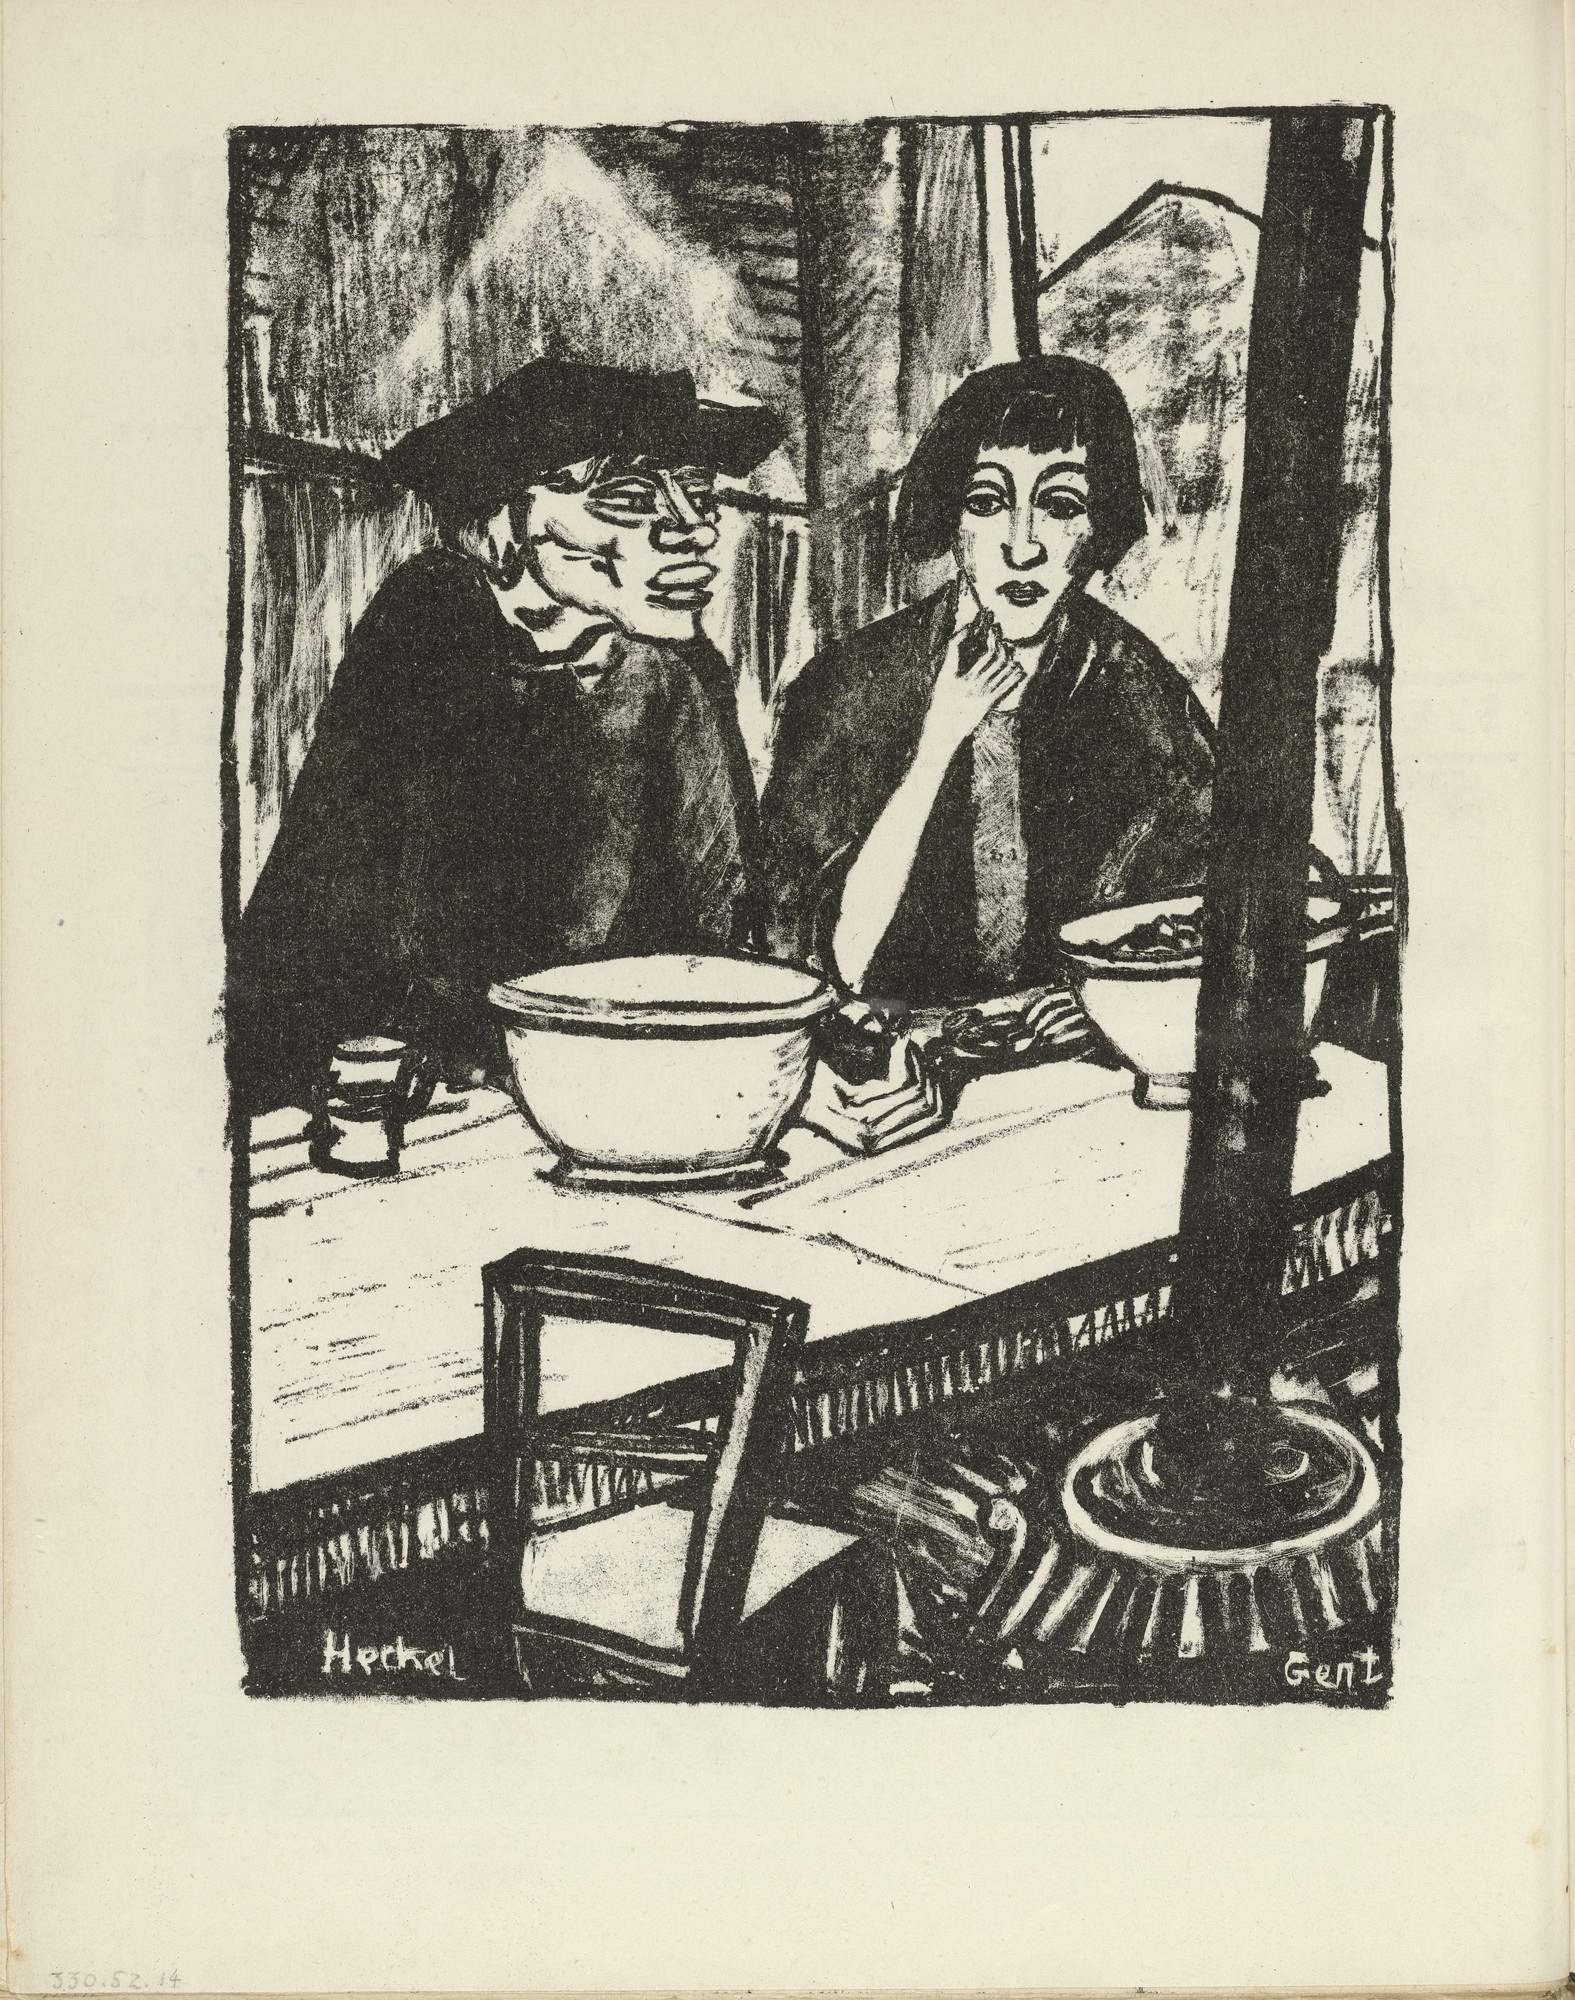 Erich Heckel. Ghent (Gent) (plate, folio 8 verso) from the periodical Der Bildermann, vol. 1, no. 4 (May 1916). 1916